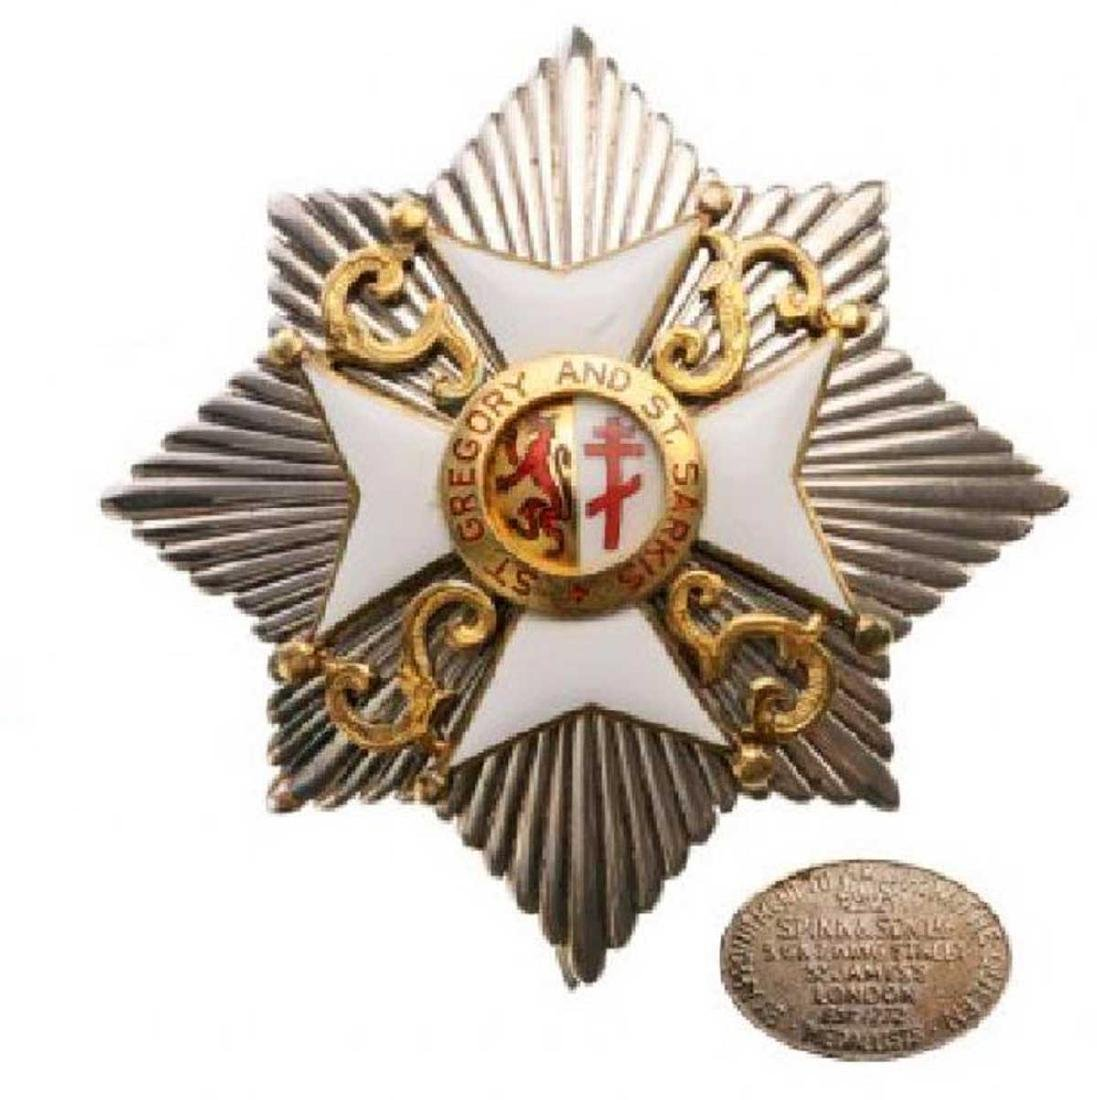 ST. GREGORY AND ST. SARKIS ORDER, Grand Cross Set, 1st - 4